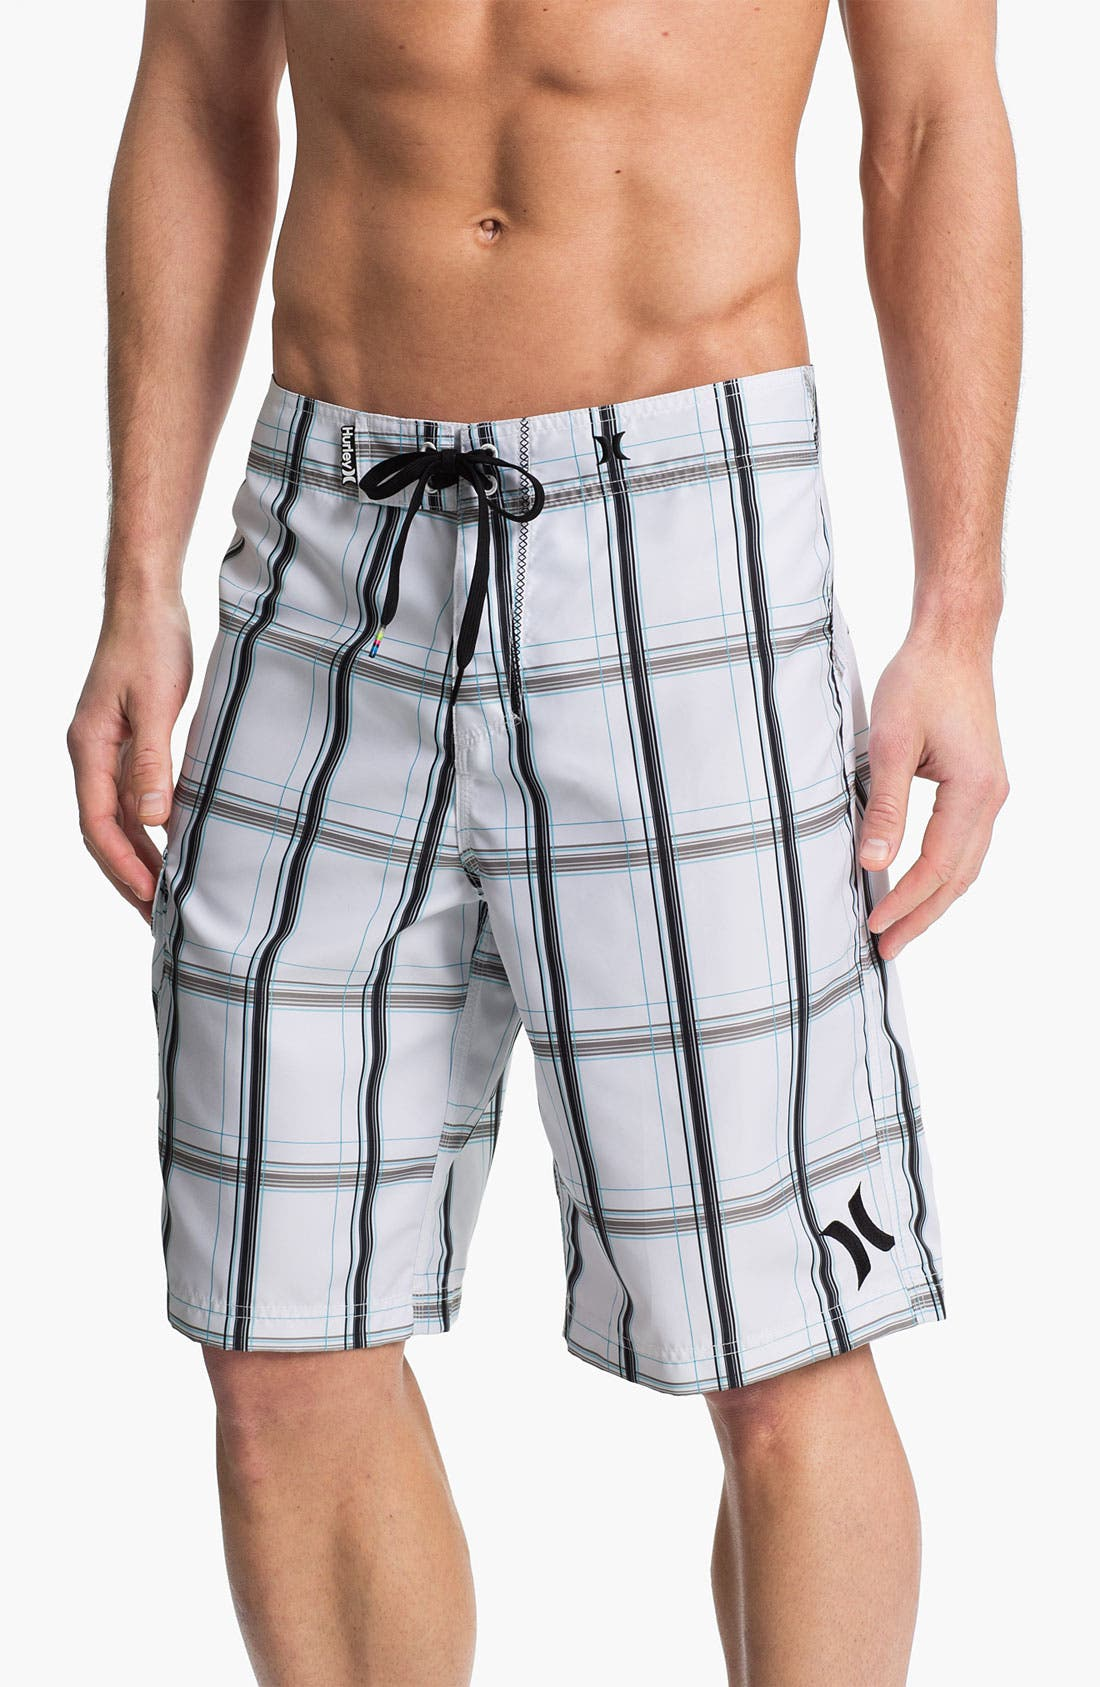 Alternate Image 1 Selected - Hurley 'Puerto Rico' Recycled Board Shorts (Men)